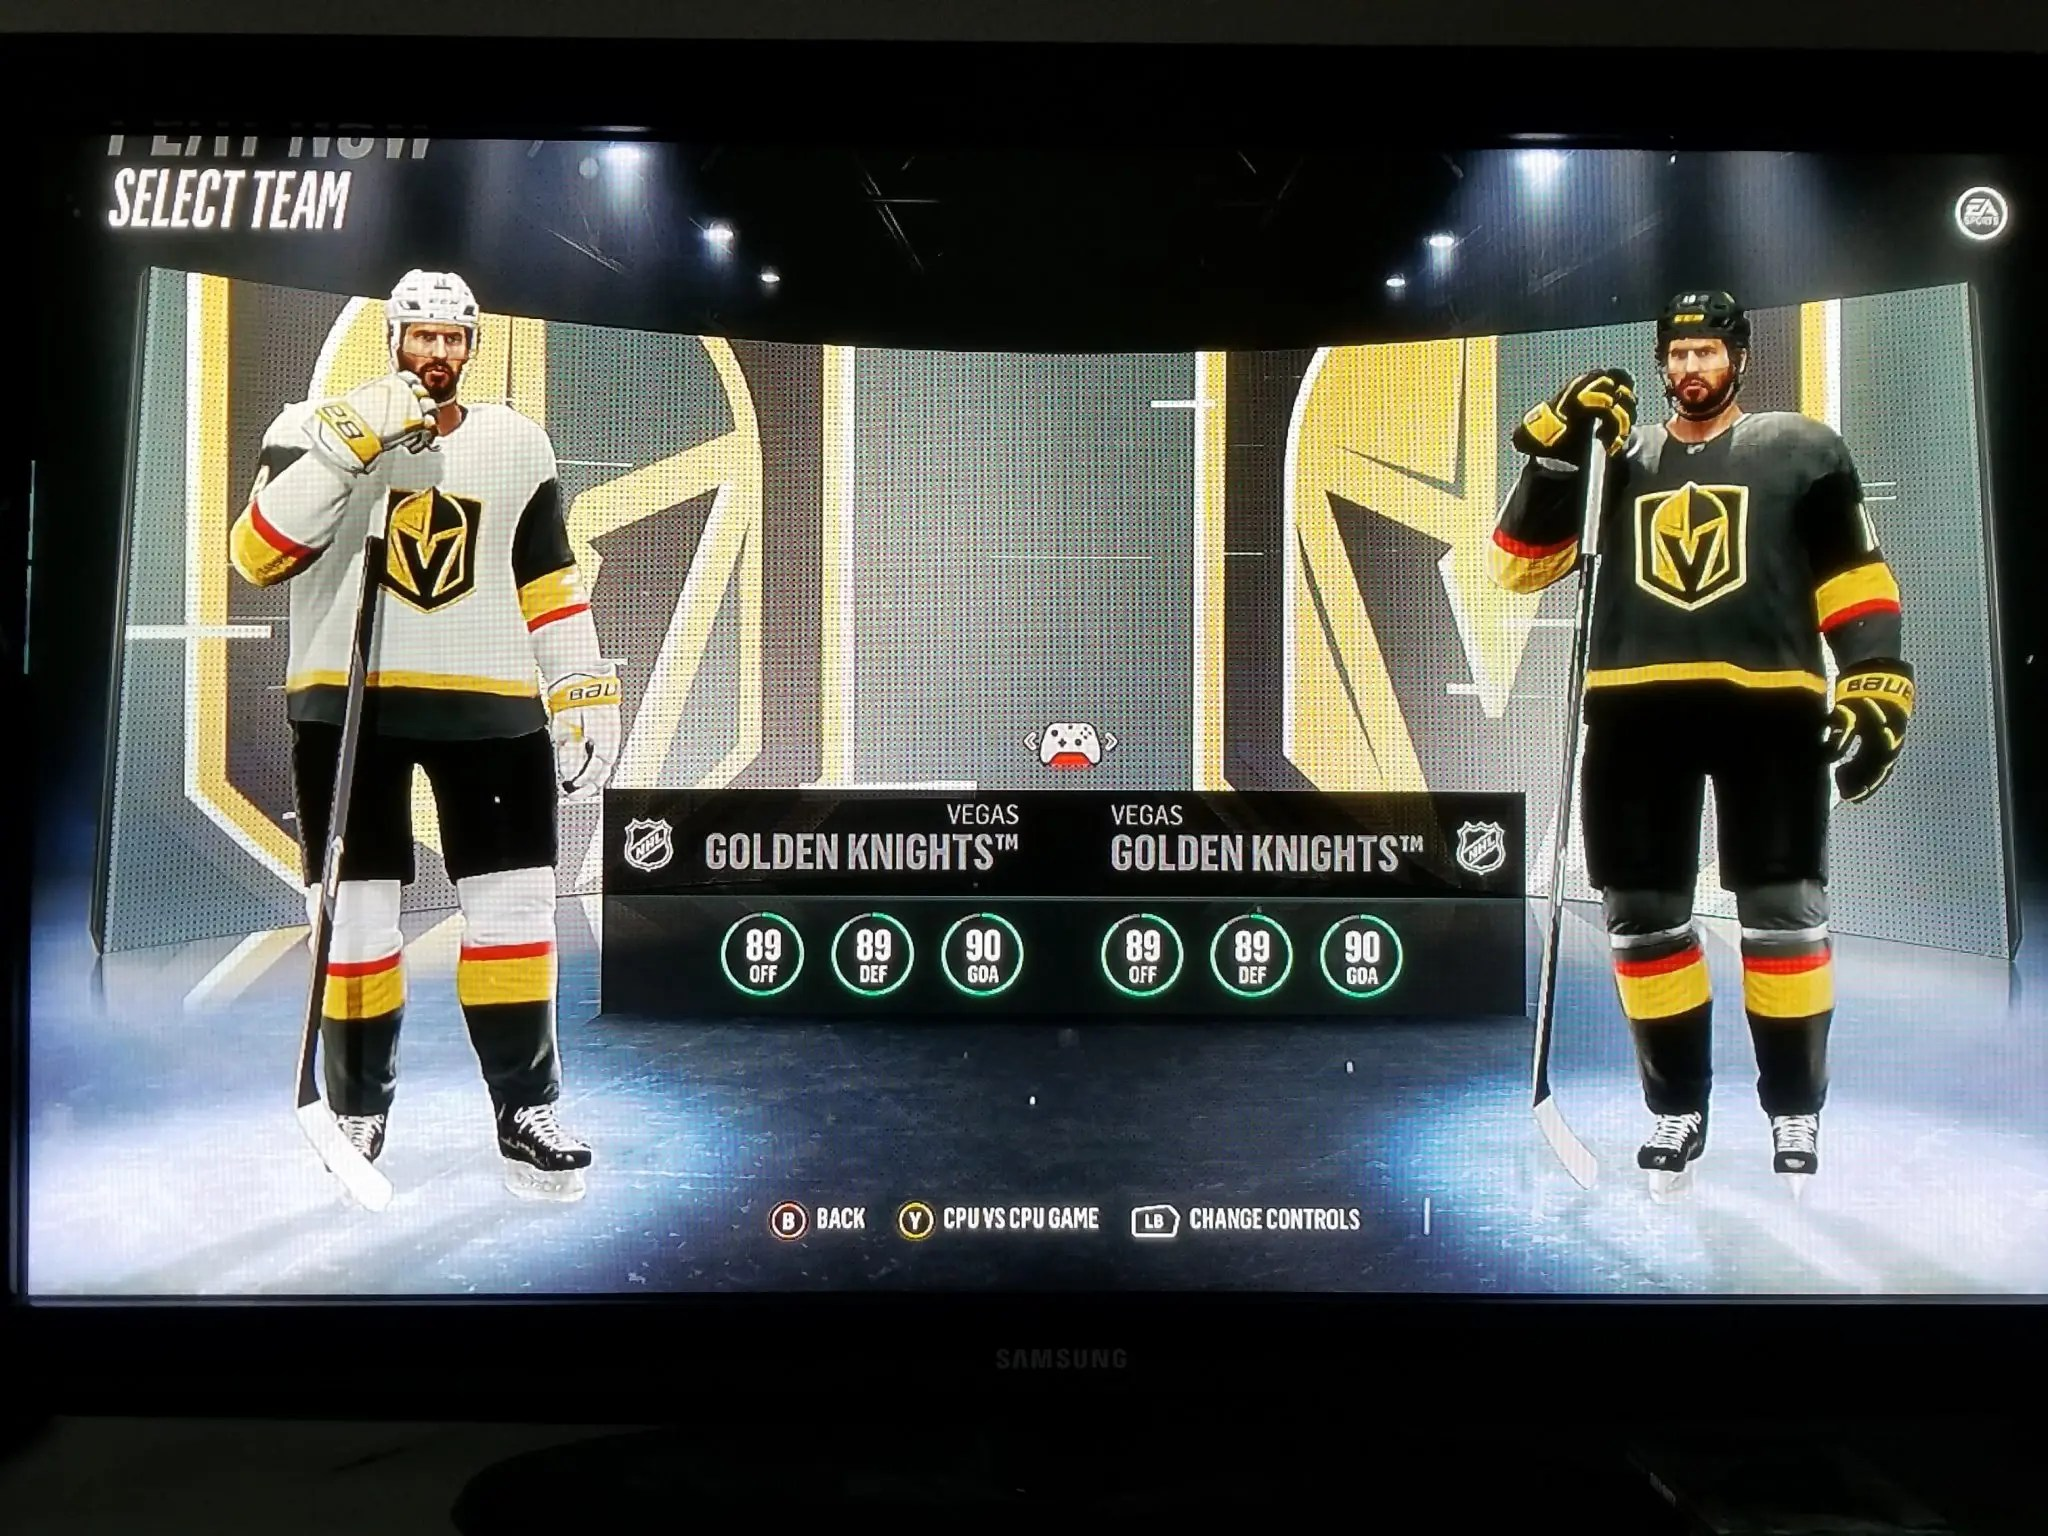 Golden Knights Player Ratings In NHL 18 - SinBin vegas